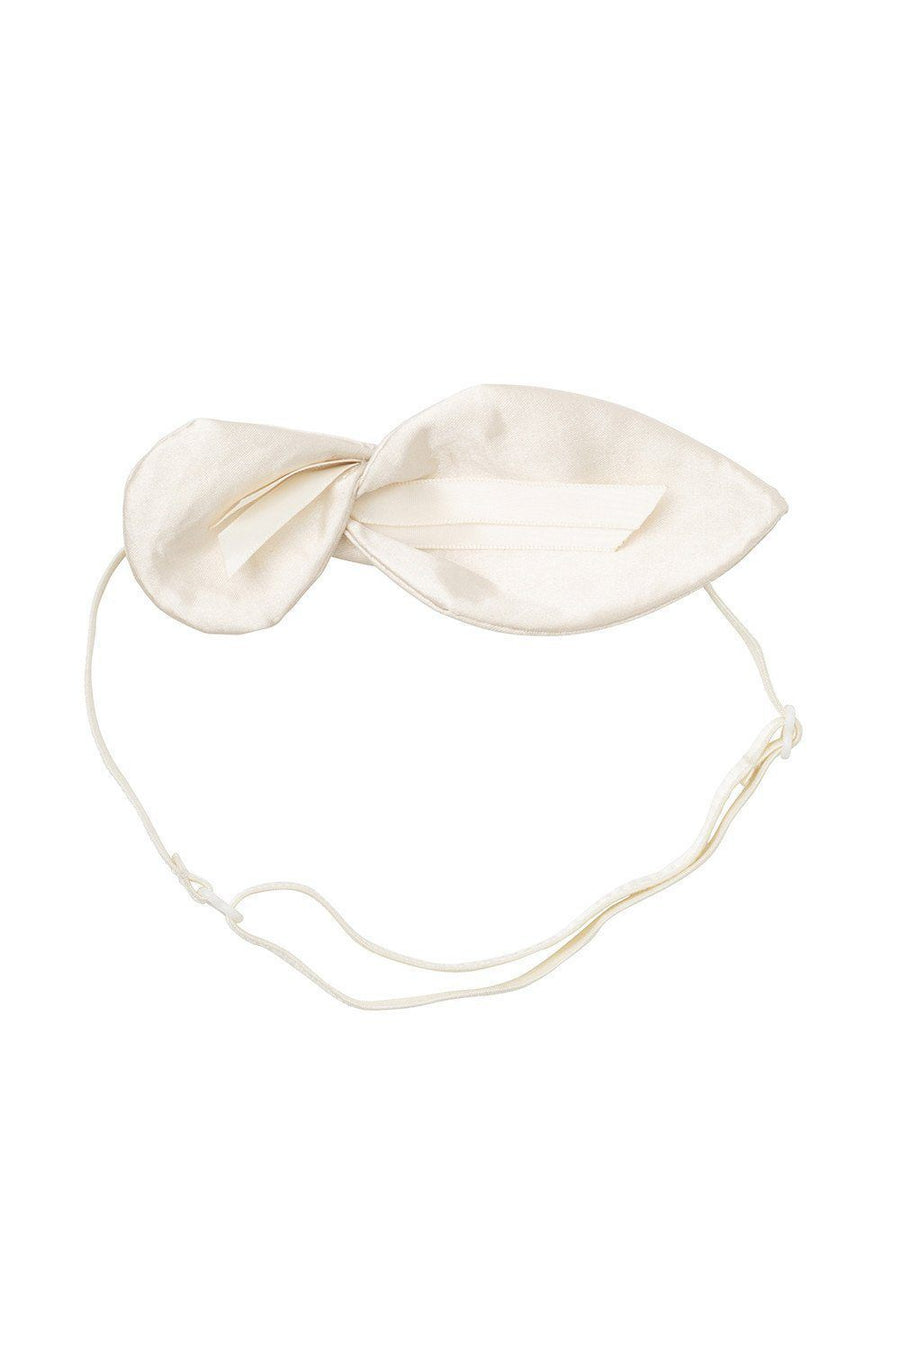 Ribbon Petal Baby - Ivory - PROJECT 6, modest fashion